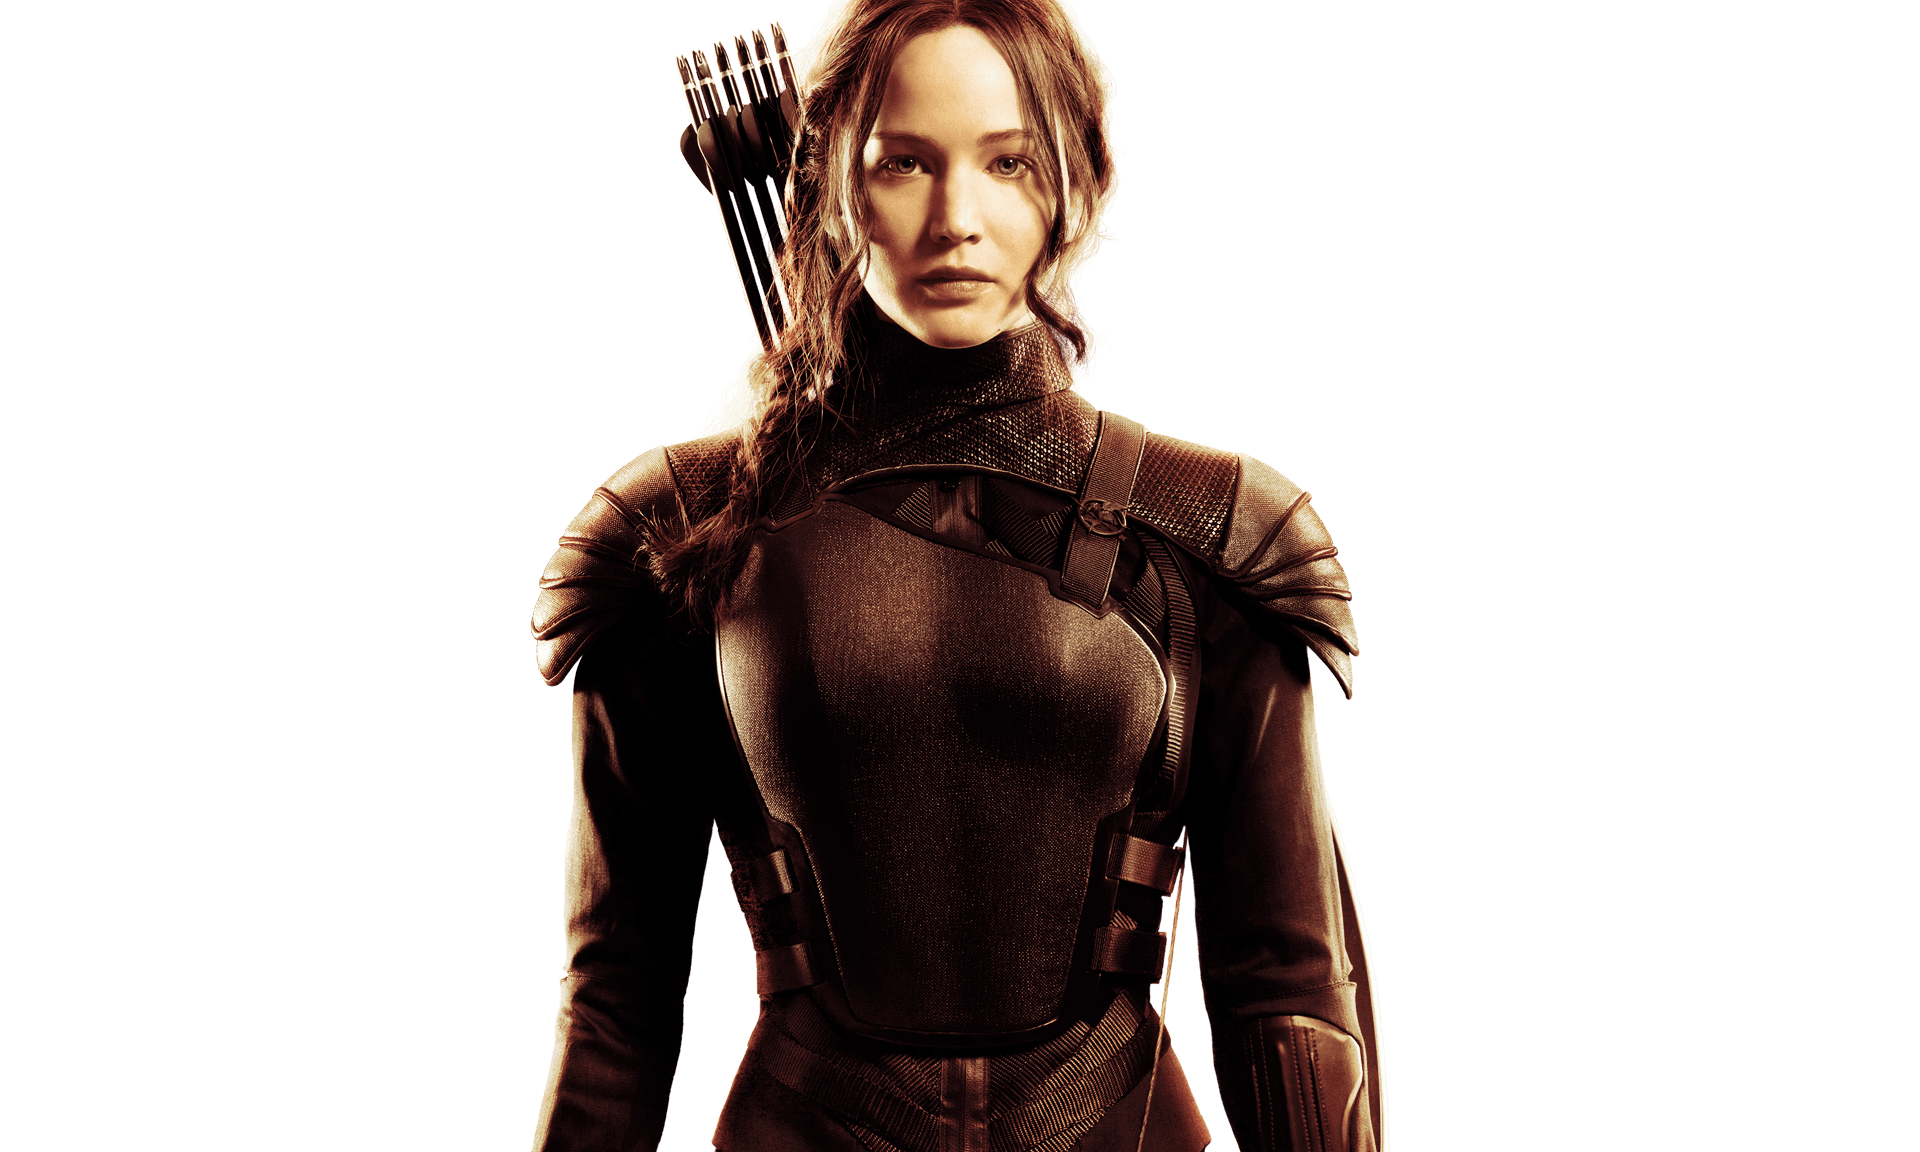 the-hunger-games-mockingjay-e28093-part-1-image- - The Hunger Games PNG